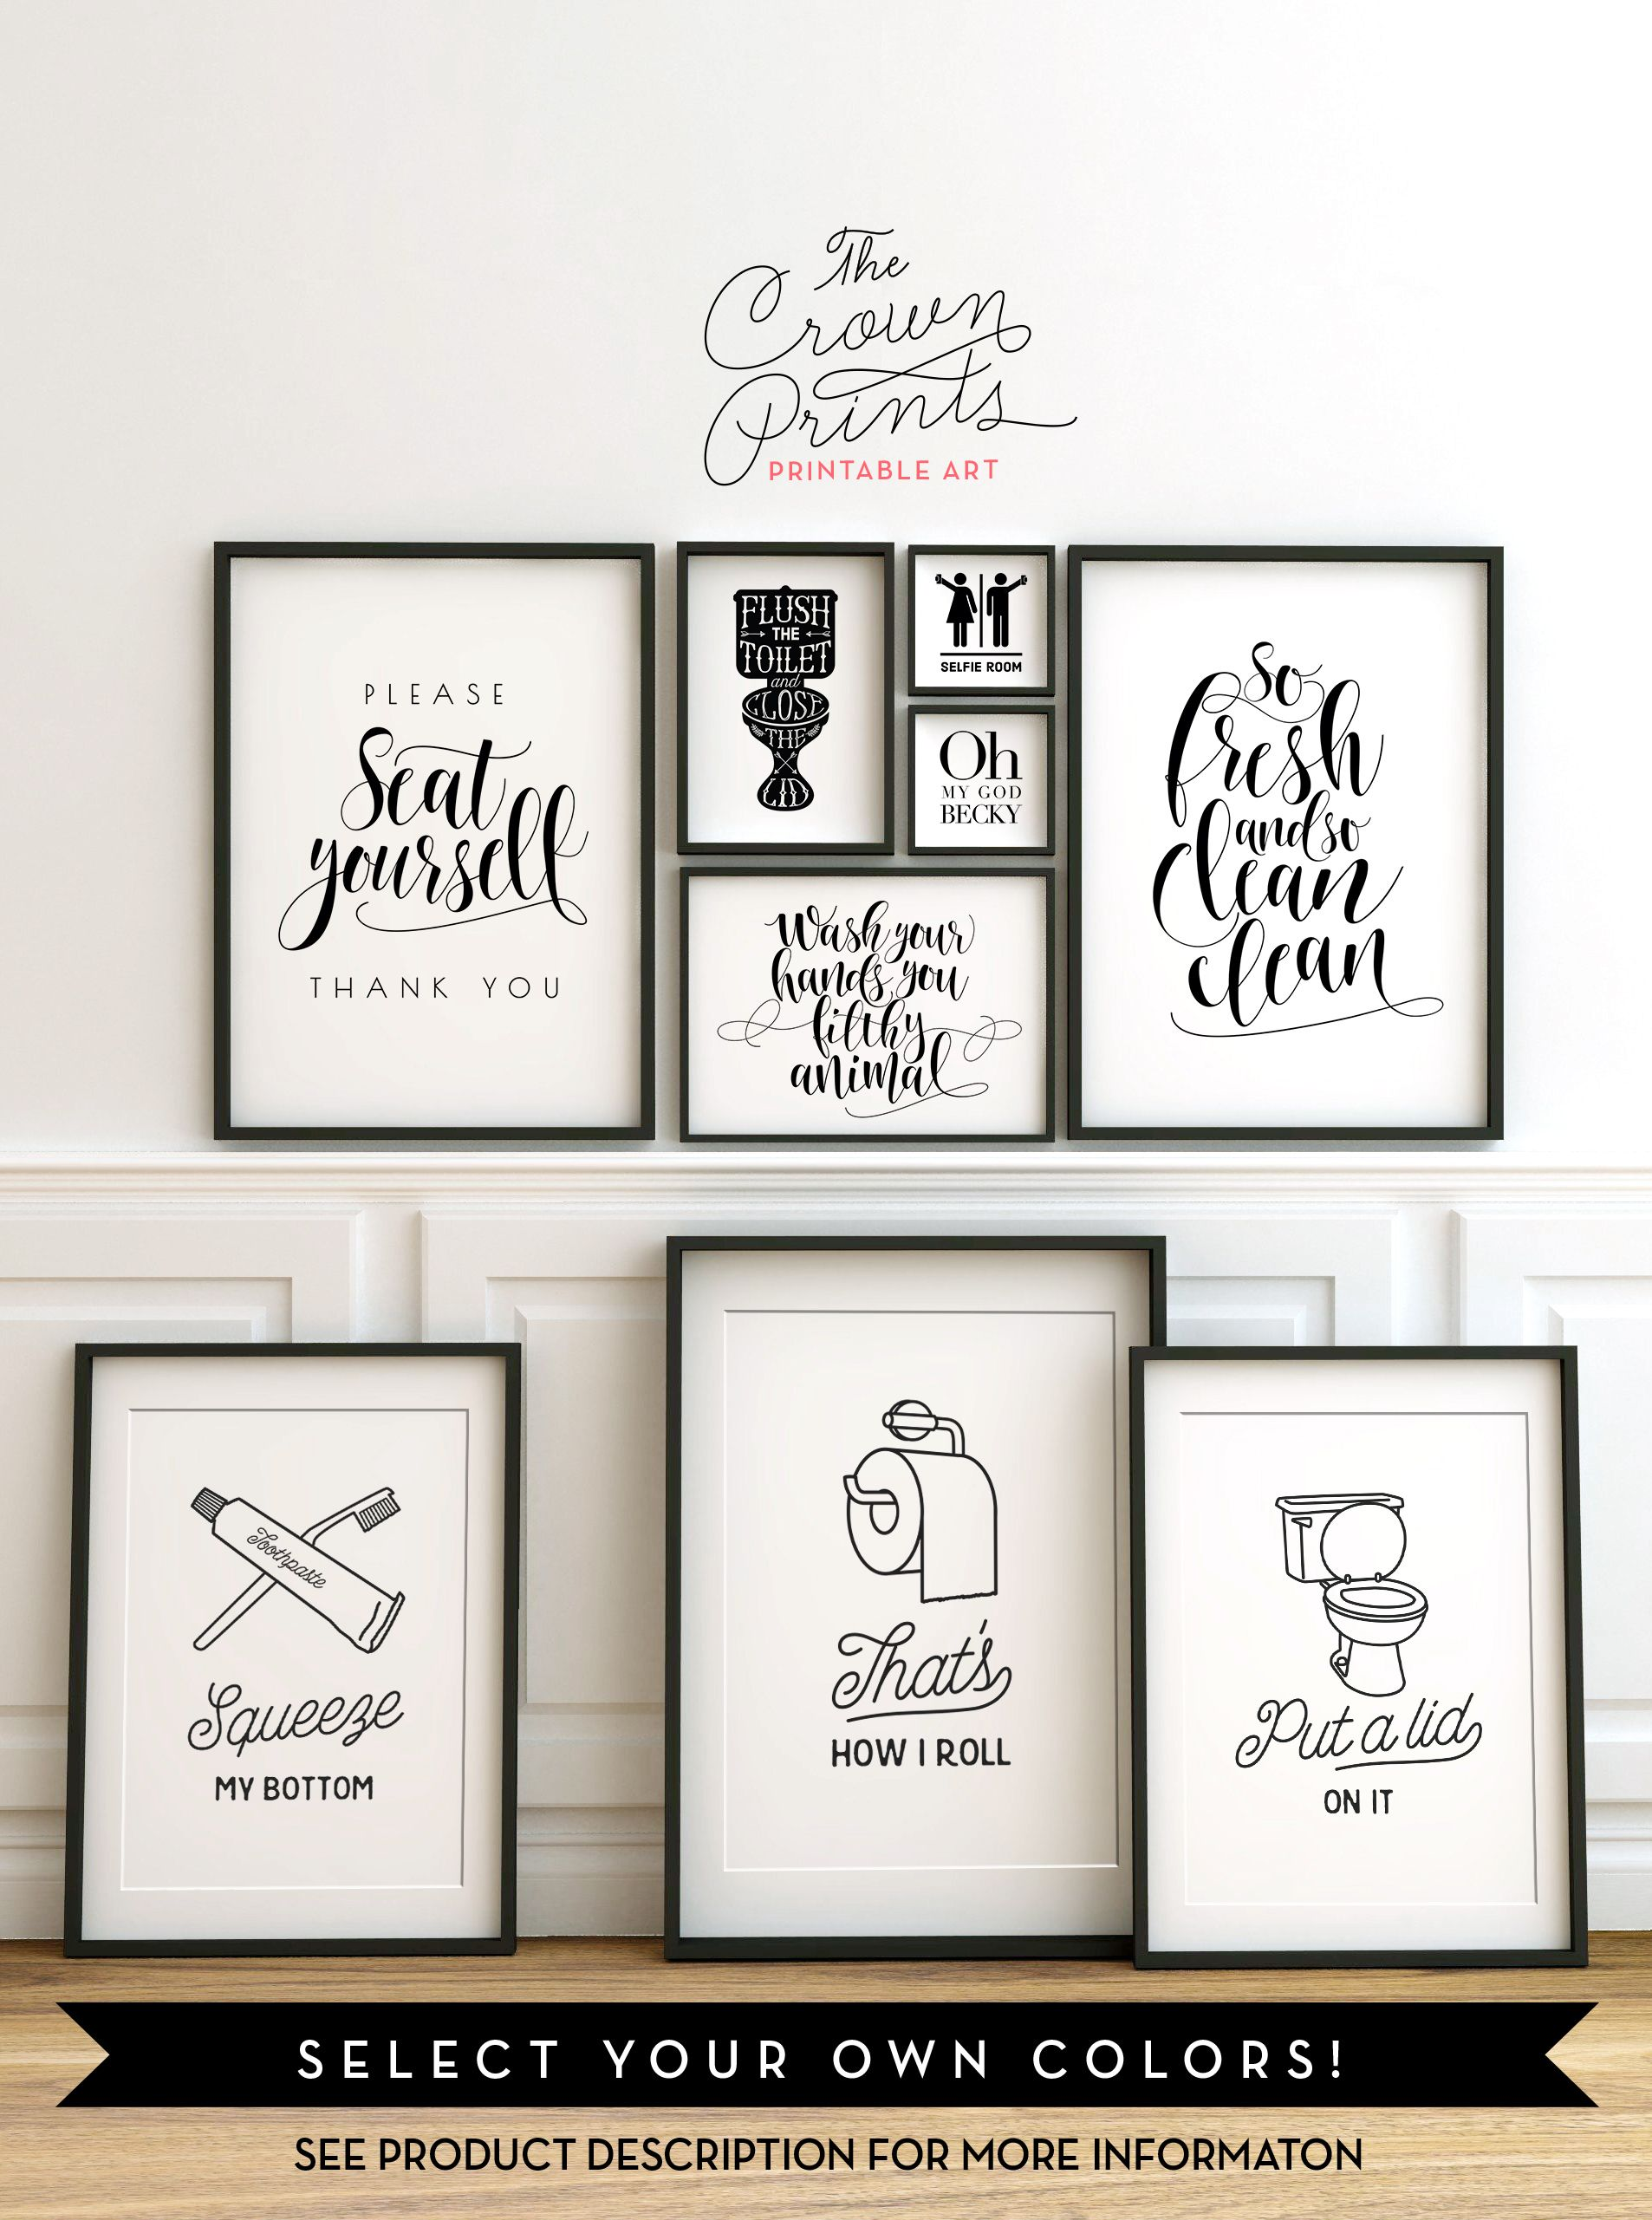 Bathroom Decor Etsy Of Printable Bathroom Wall Art From The Crown Prints On Etsy